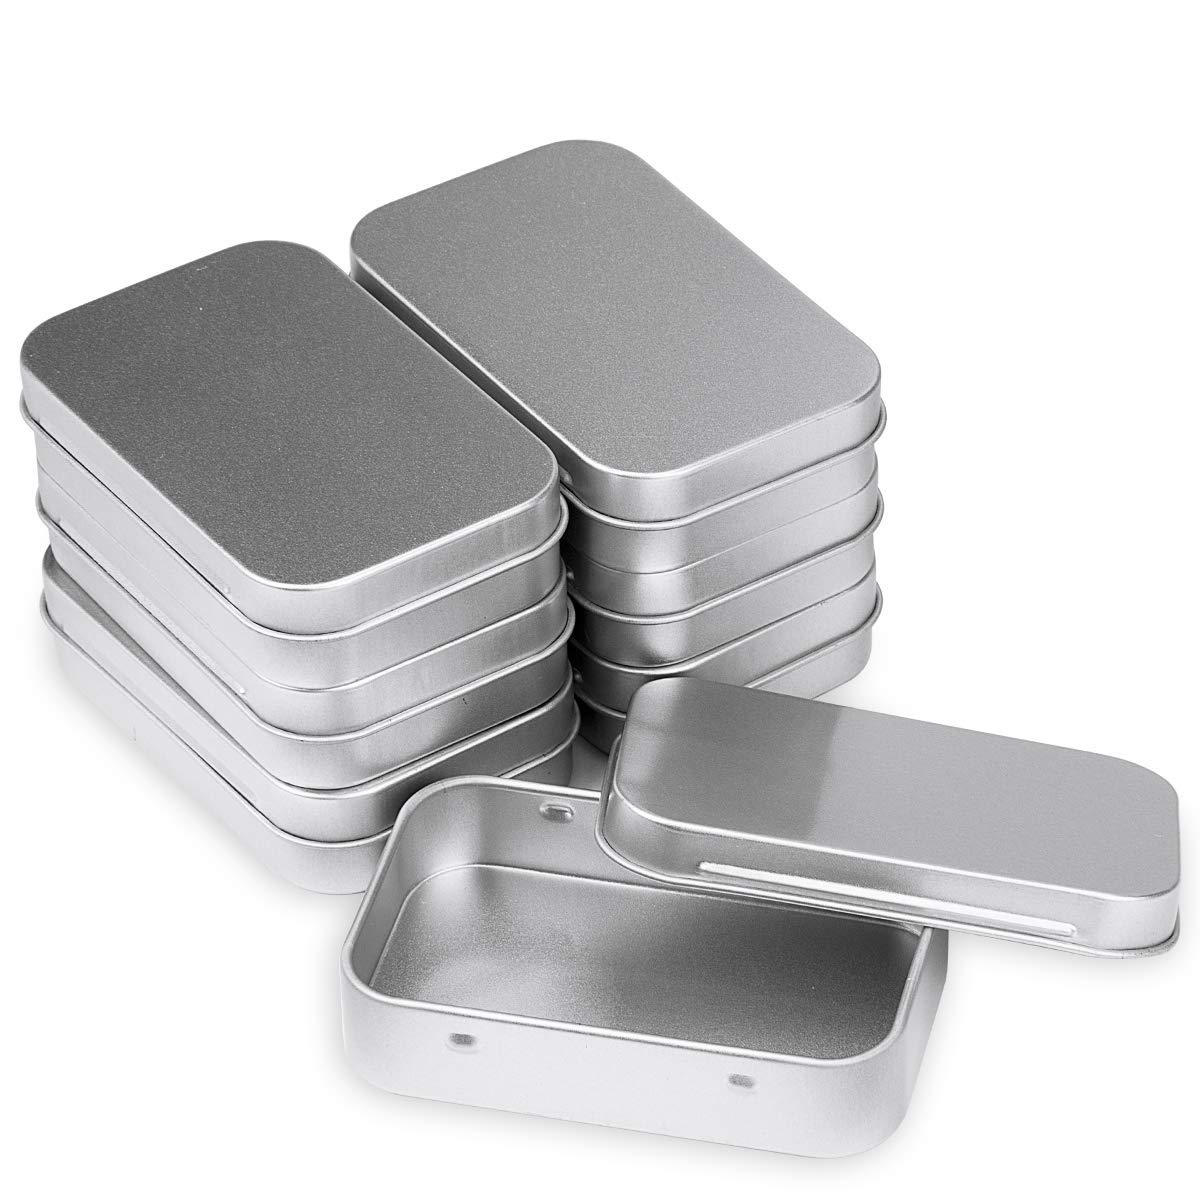 Ondder Silver Metal Rectangular Tin Box Containers Mini Storage Box Small Empty Container Portable-Sized Home Storage Organizer Kit, 3.75 by 2.45 by 0.8 inch (6 Pack)